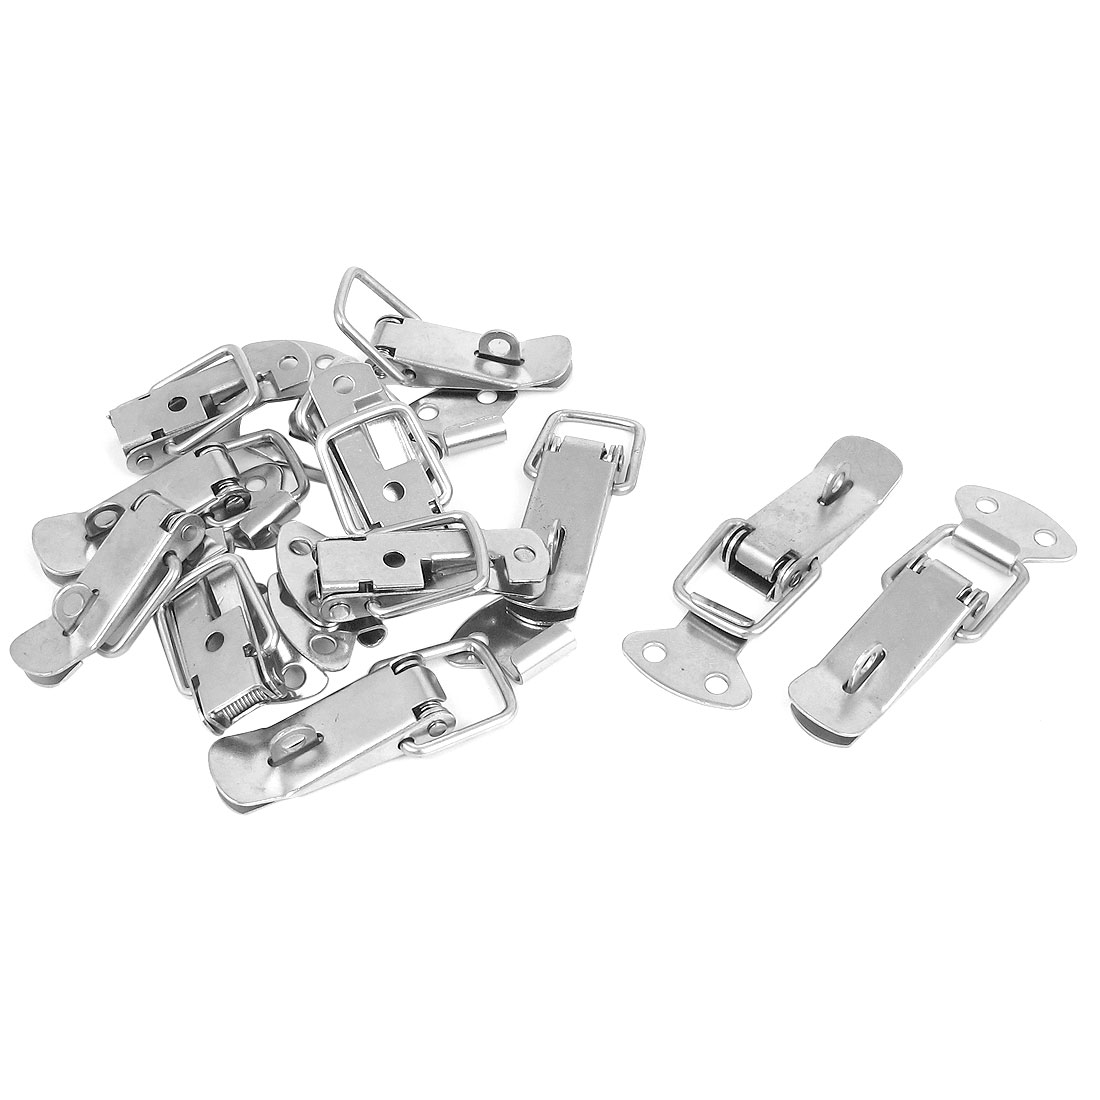 10pcs Sillver Tone Metal Spring Loaded Toolbox Box Chest Case Draw Toggle Latch Hasp